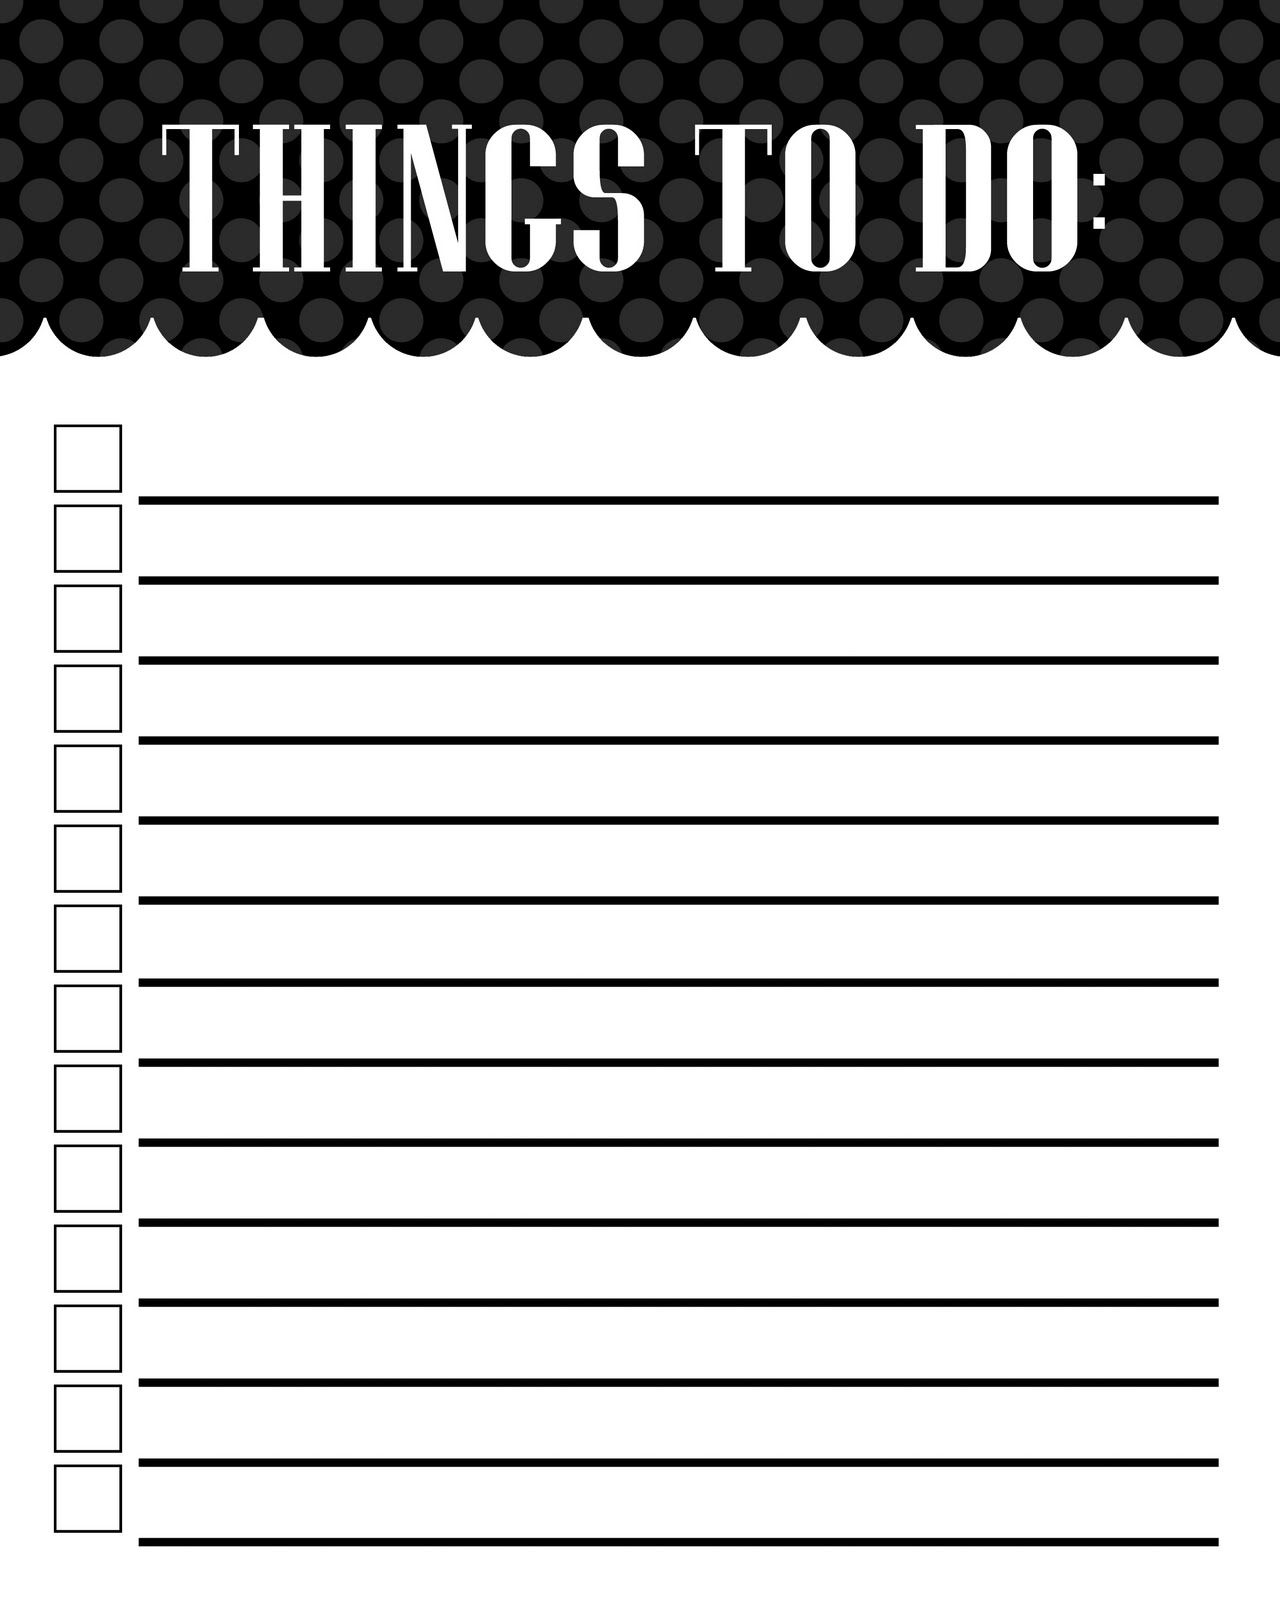 to do list printable word excel pdf | maxcalendars | pinterest